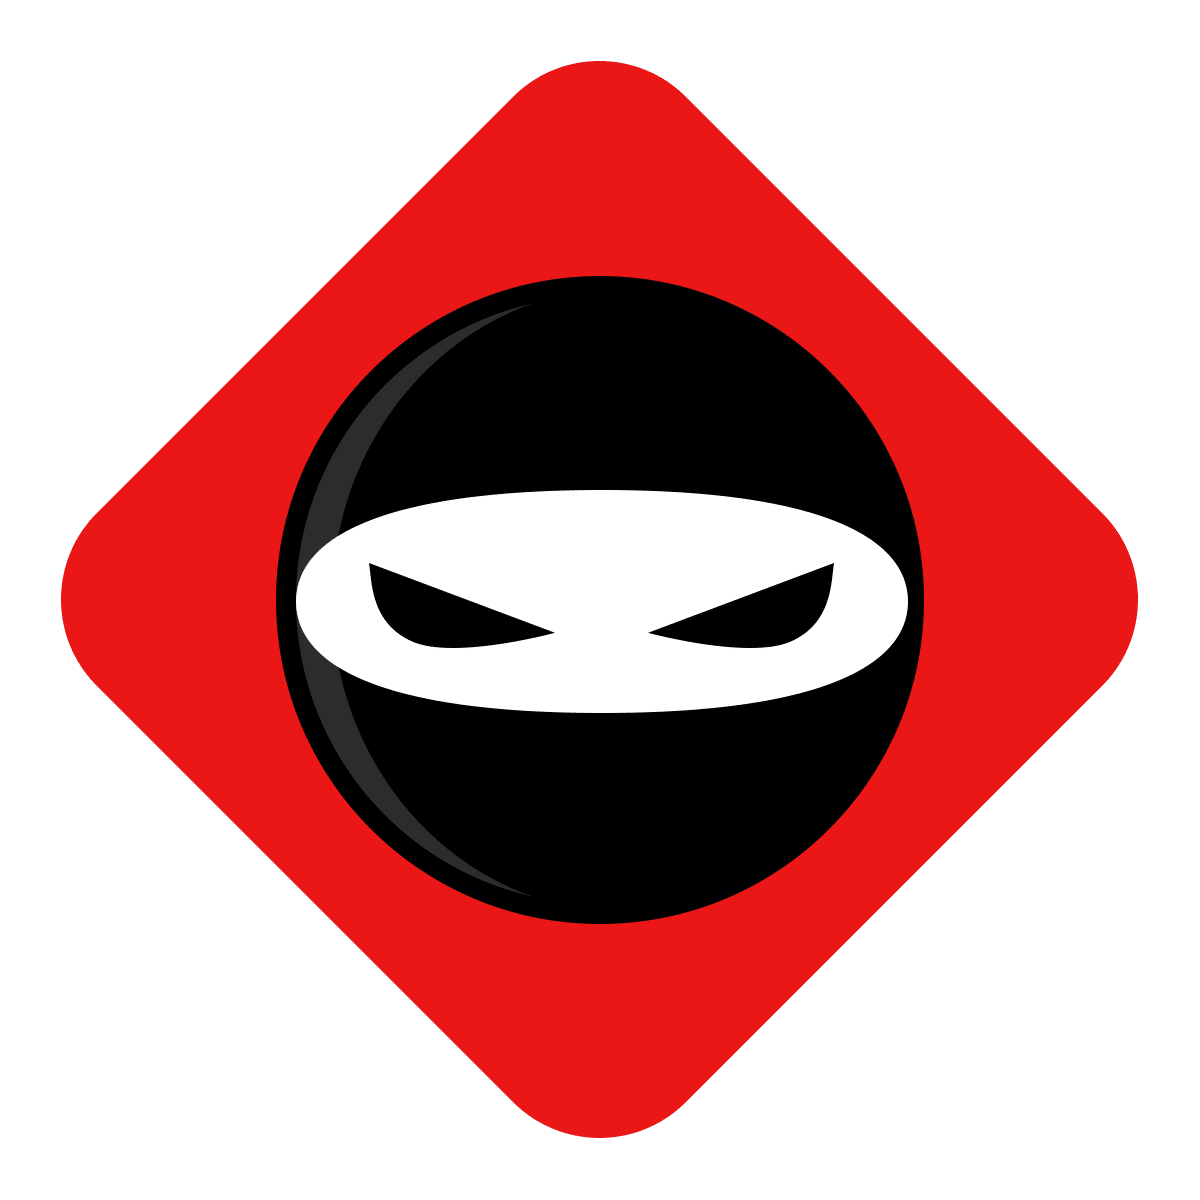 crawl space ninja icon